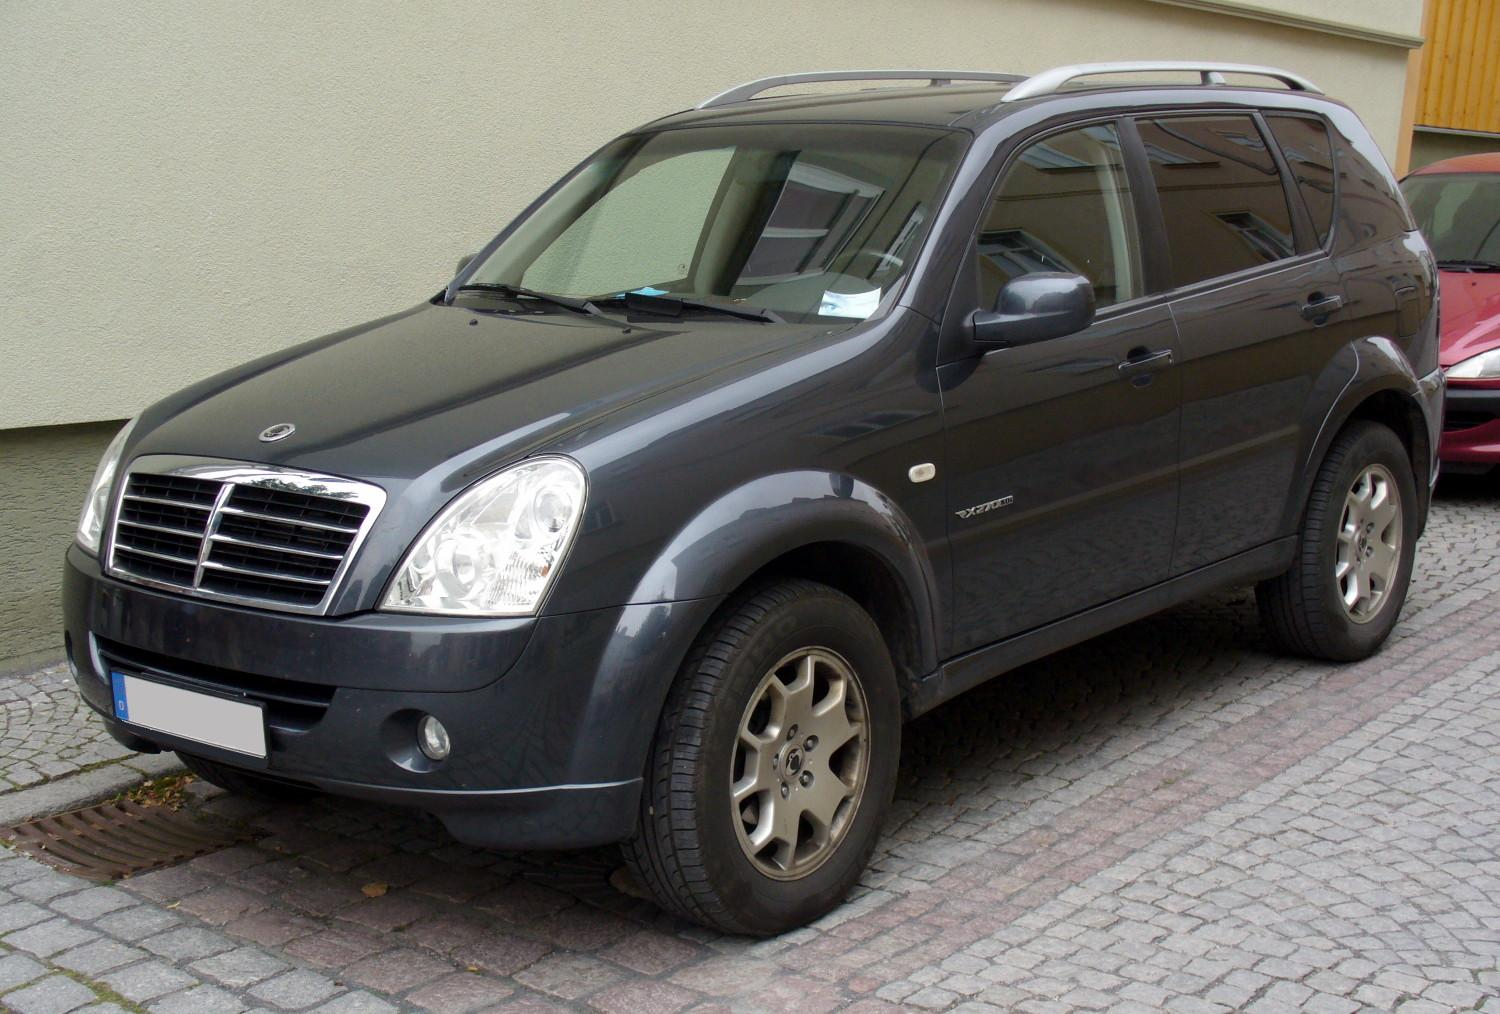 2009 Ssangyong Musso #6